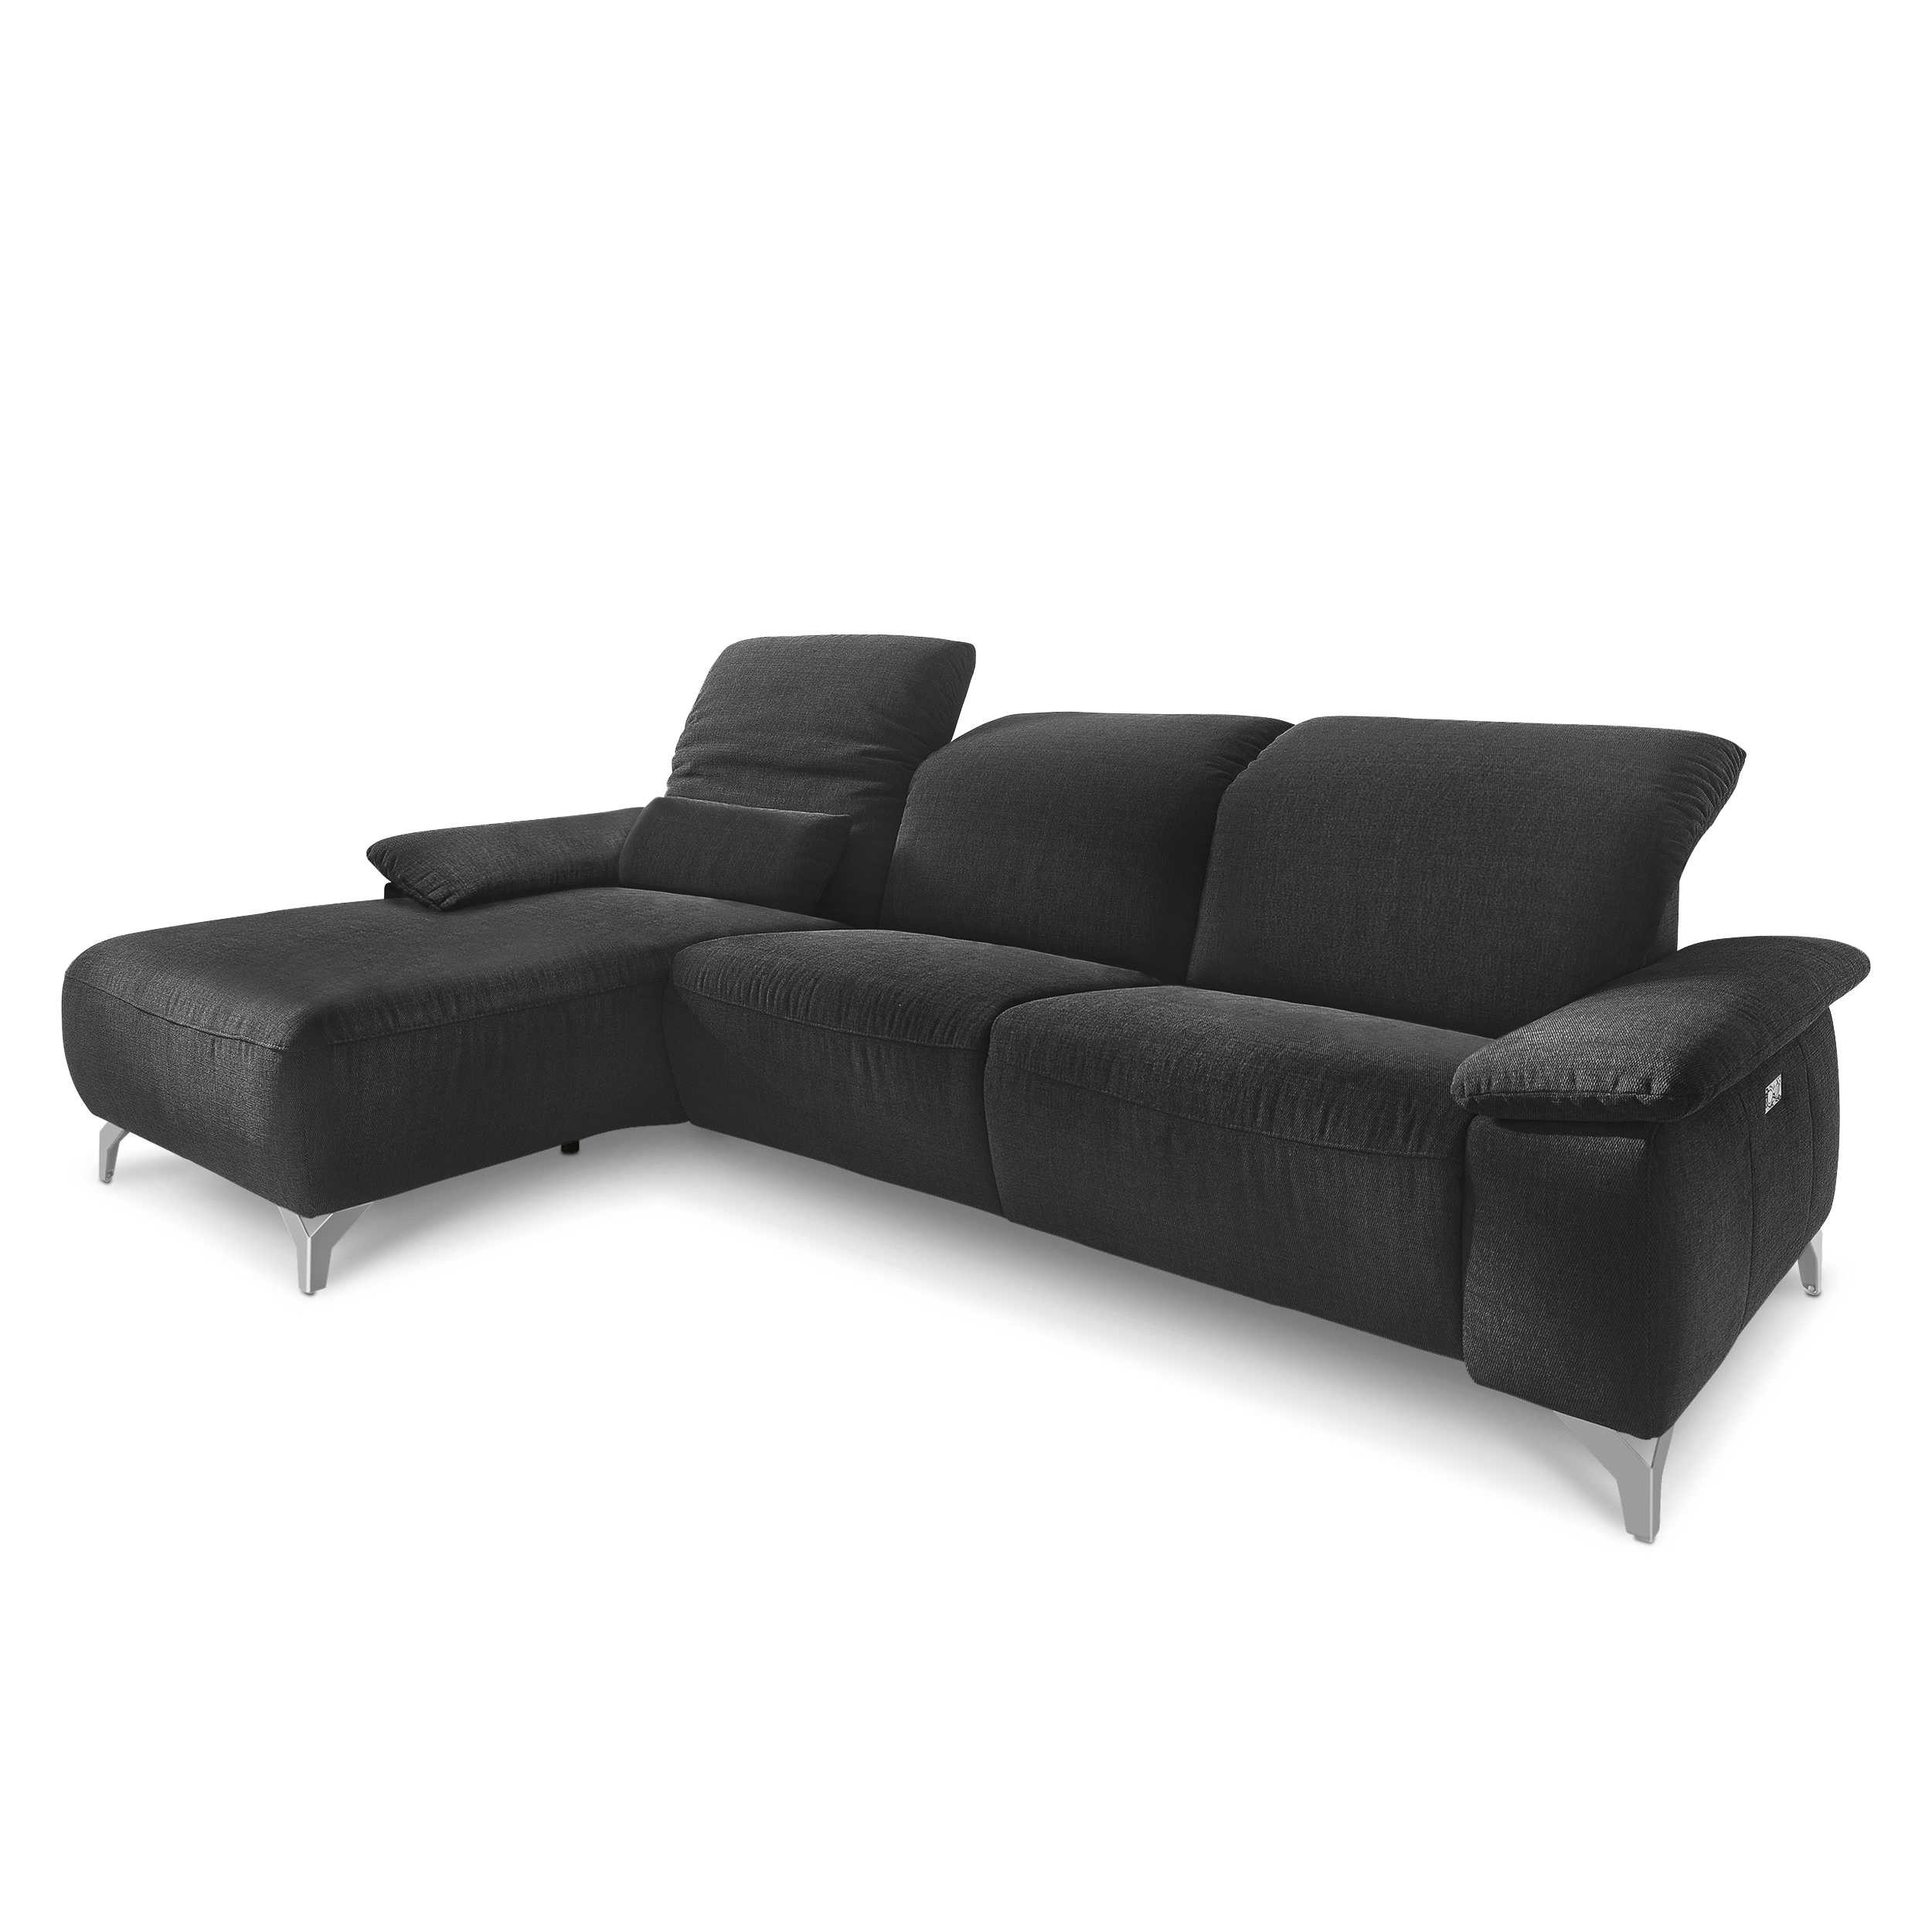 musterring sofa online kaufen. Black Bedroom Furniture Sets. Home Design Ideas